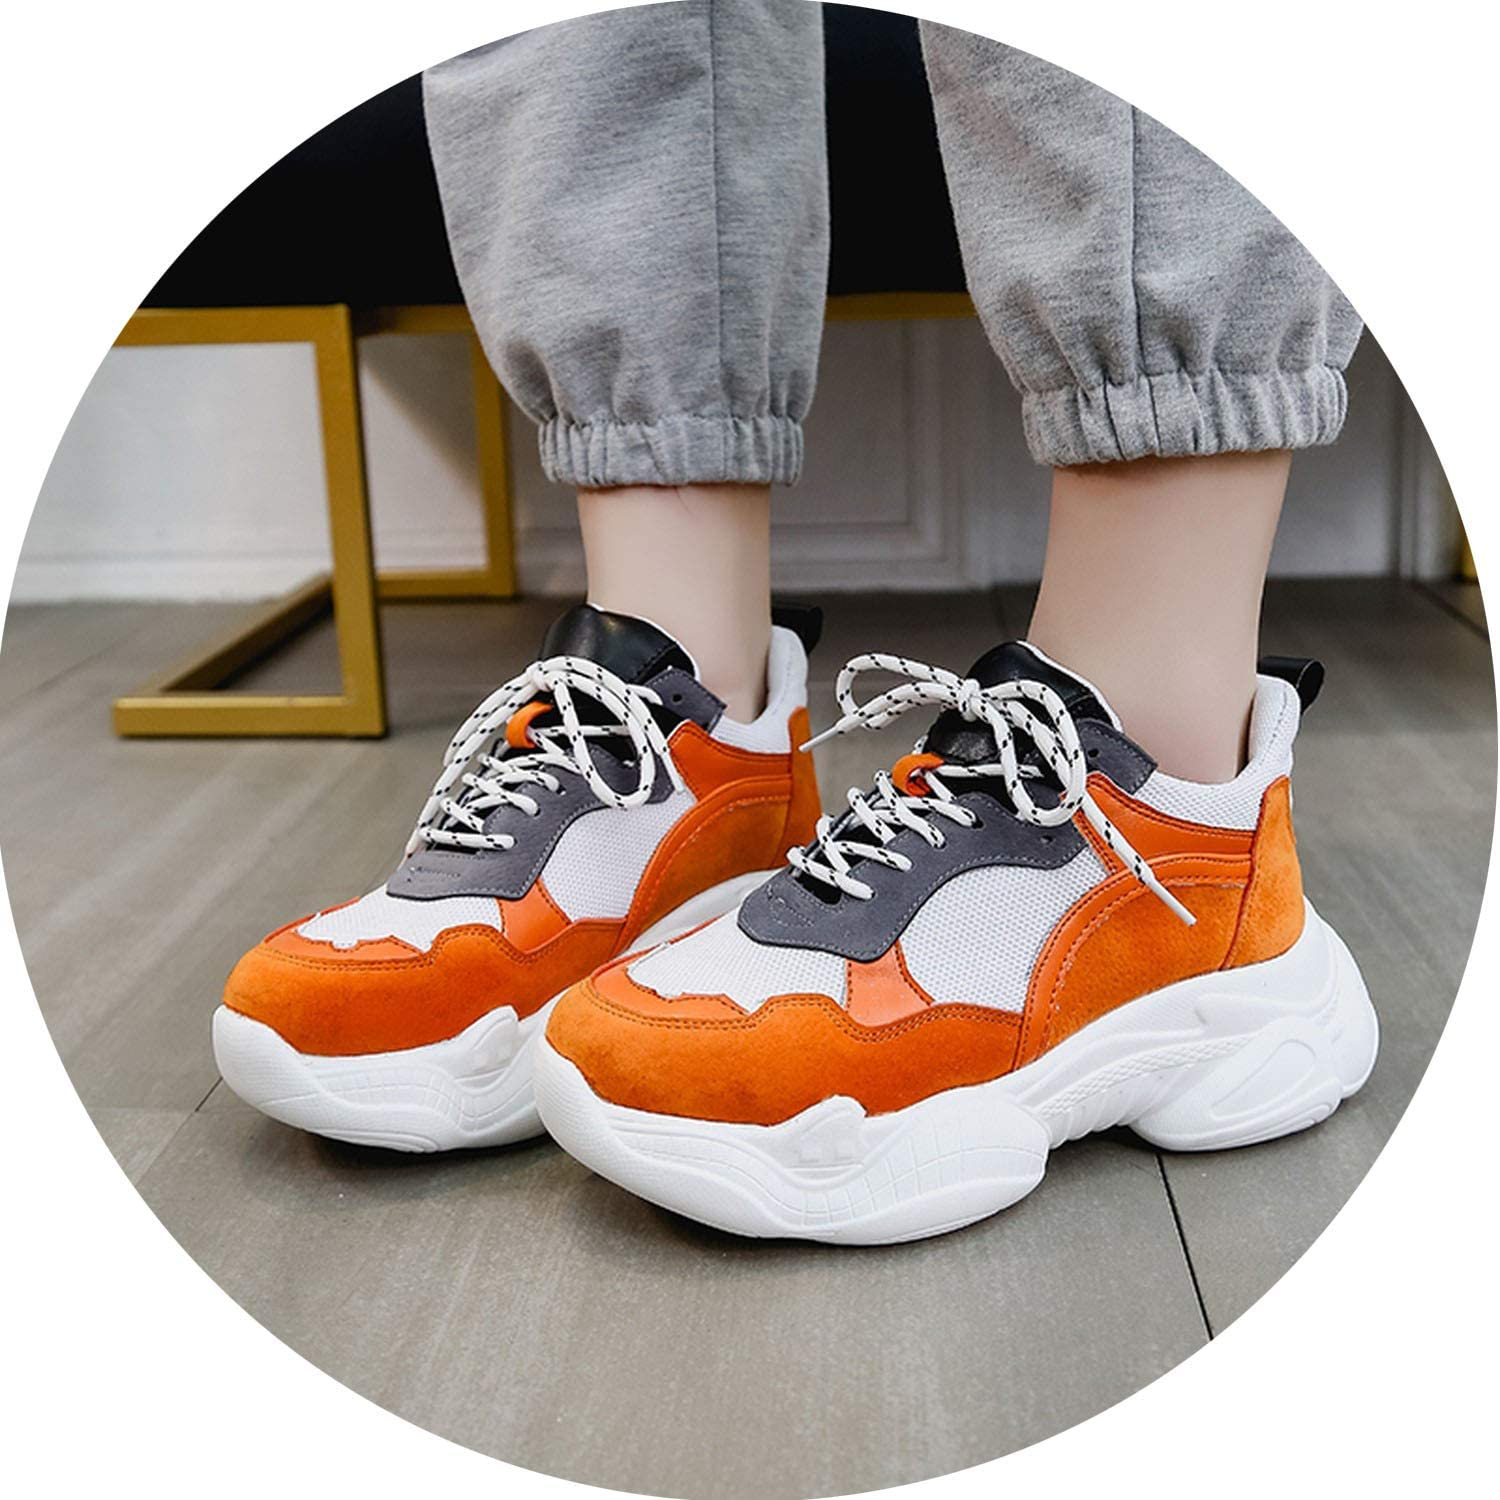 Little Happiness- Sneakers Women shoes Women Casual Sneakers Female Height Increasing Lace Up shoes